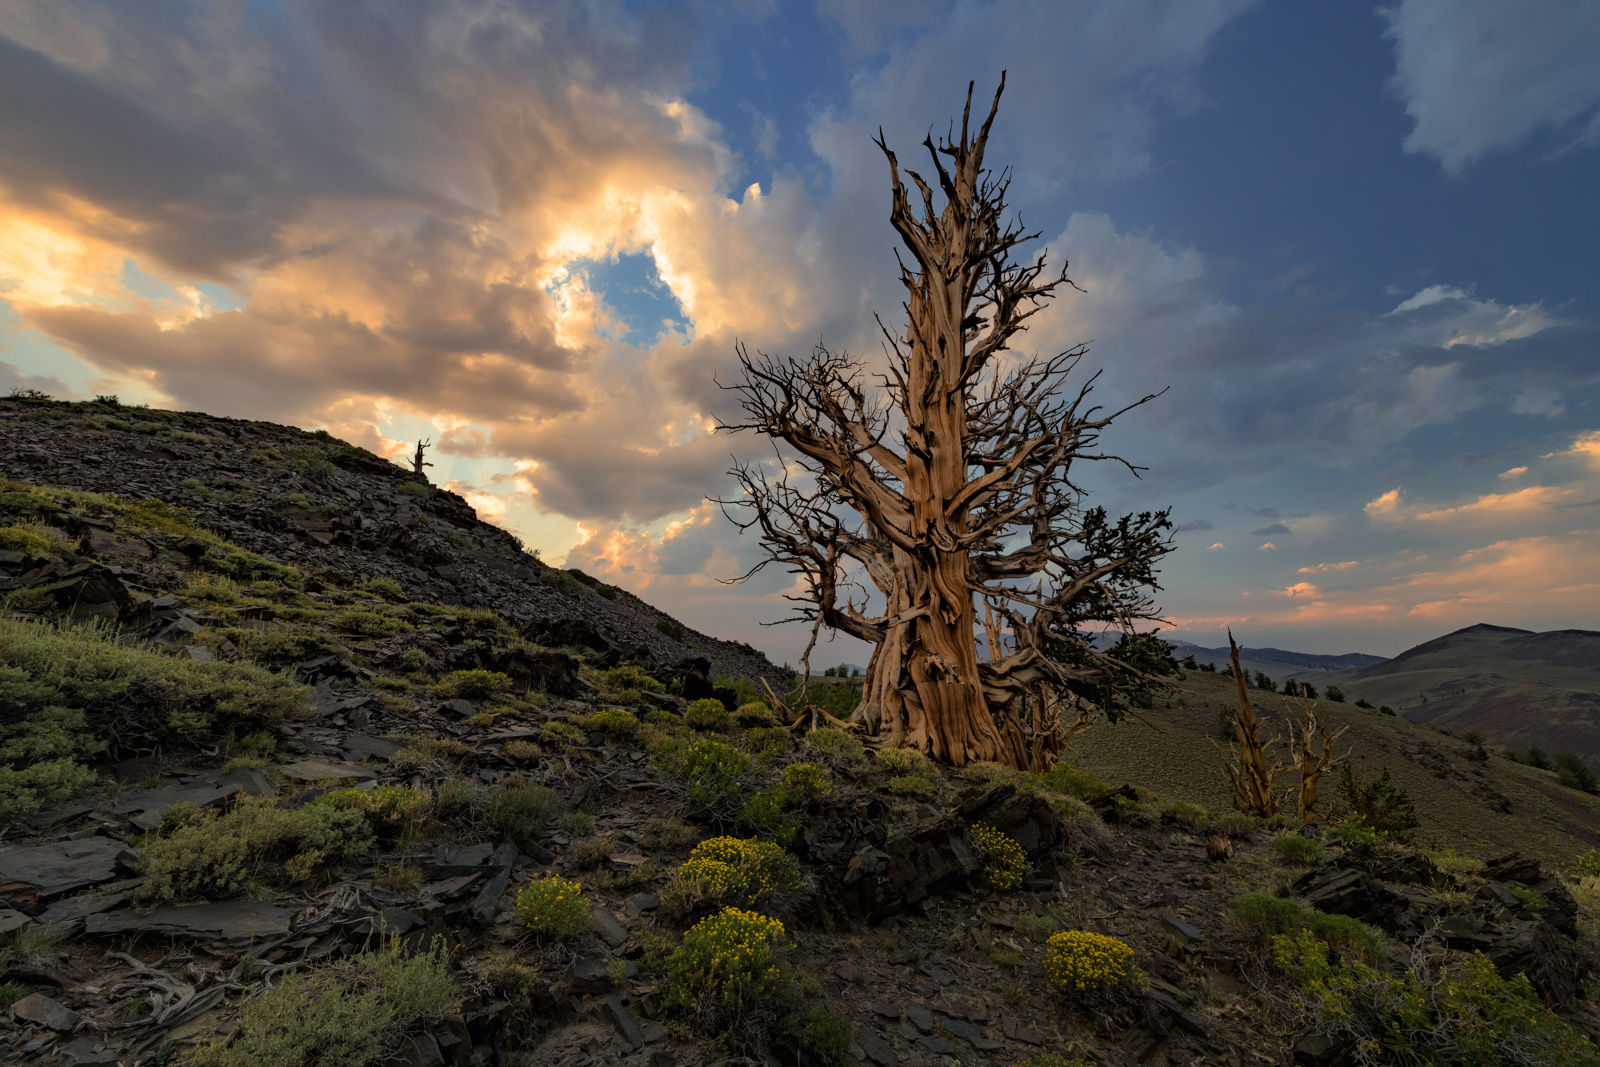 A Bristlcone Pine, possible thousands of years old, sits along a lone hillside in the White Mountains.